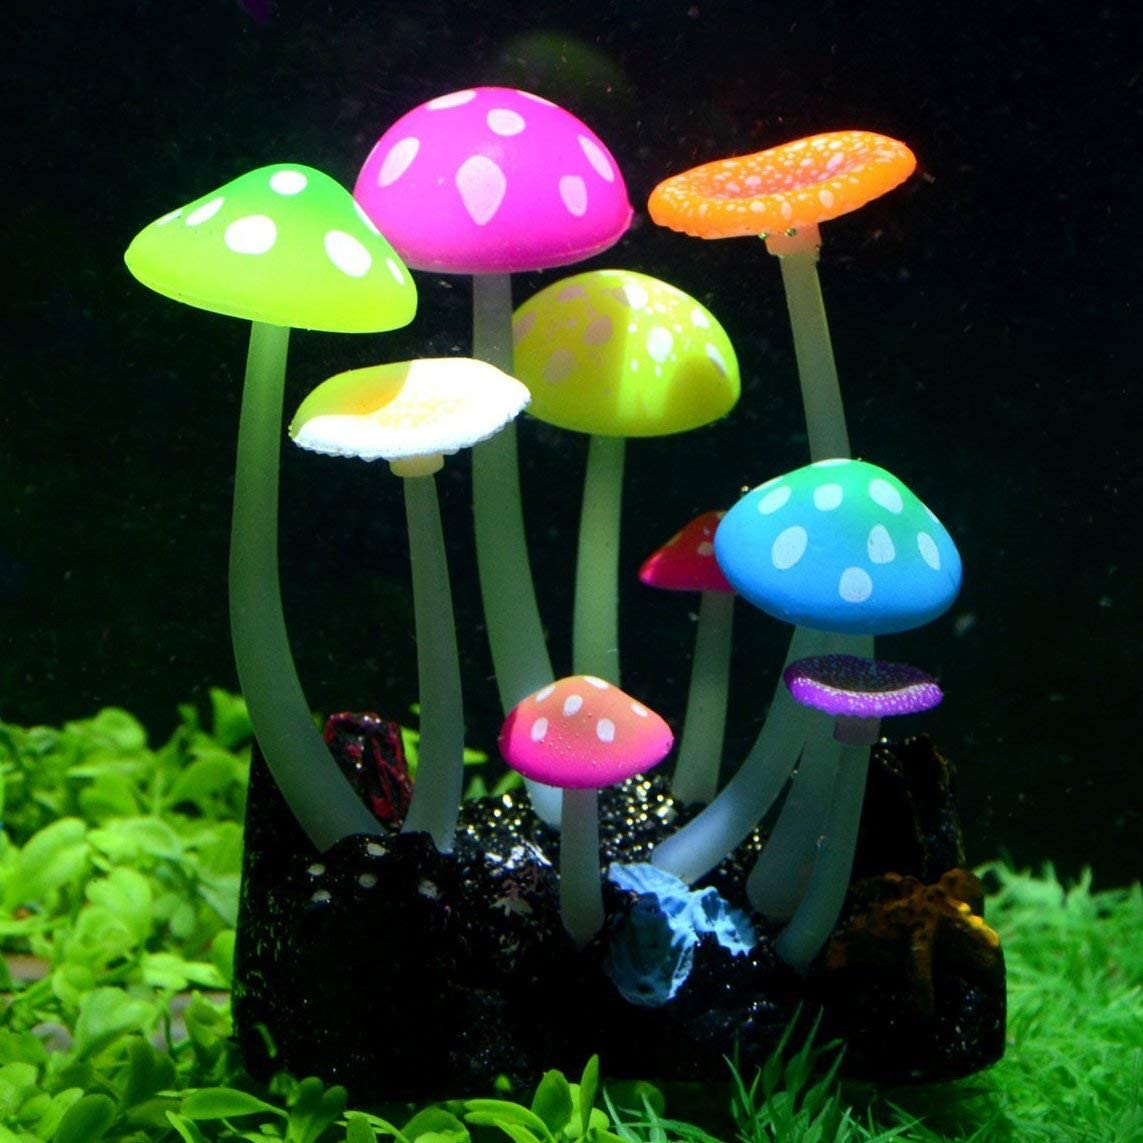 Uniclife Glowing Effect Artificial Mushroom/OX Horn Aquarium Plant Decor Ornament Decoration for Fish Tank Landscape